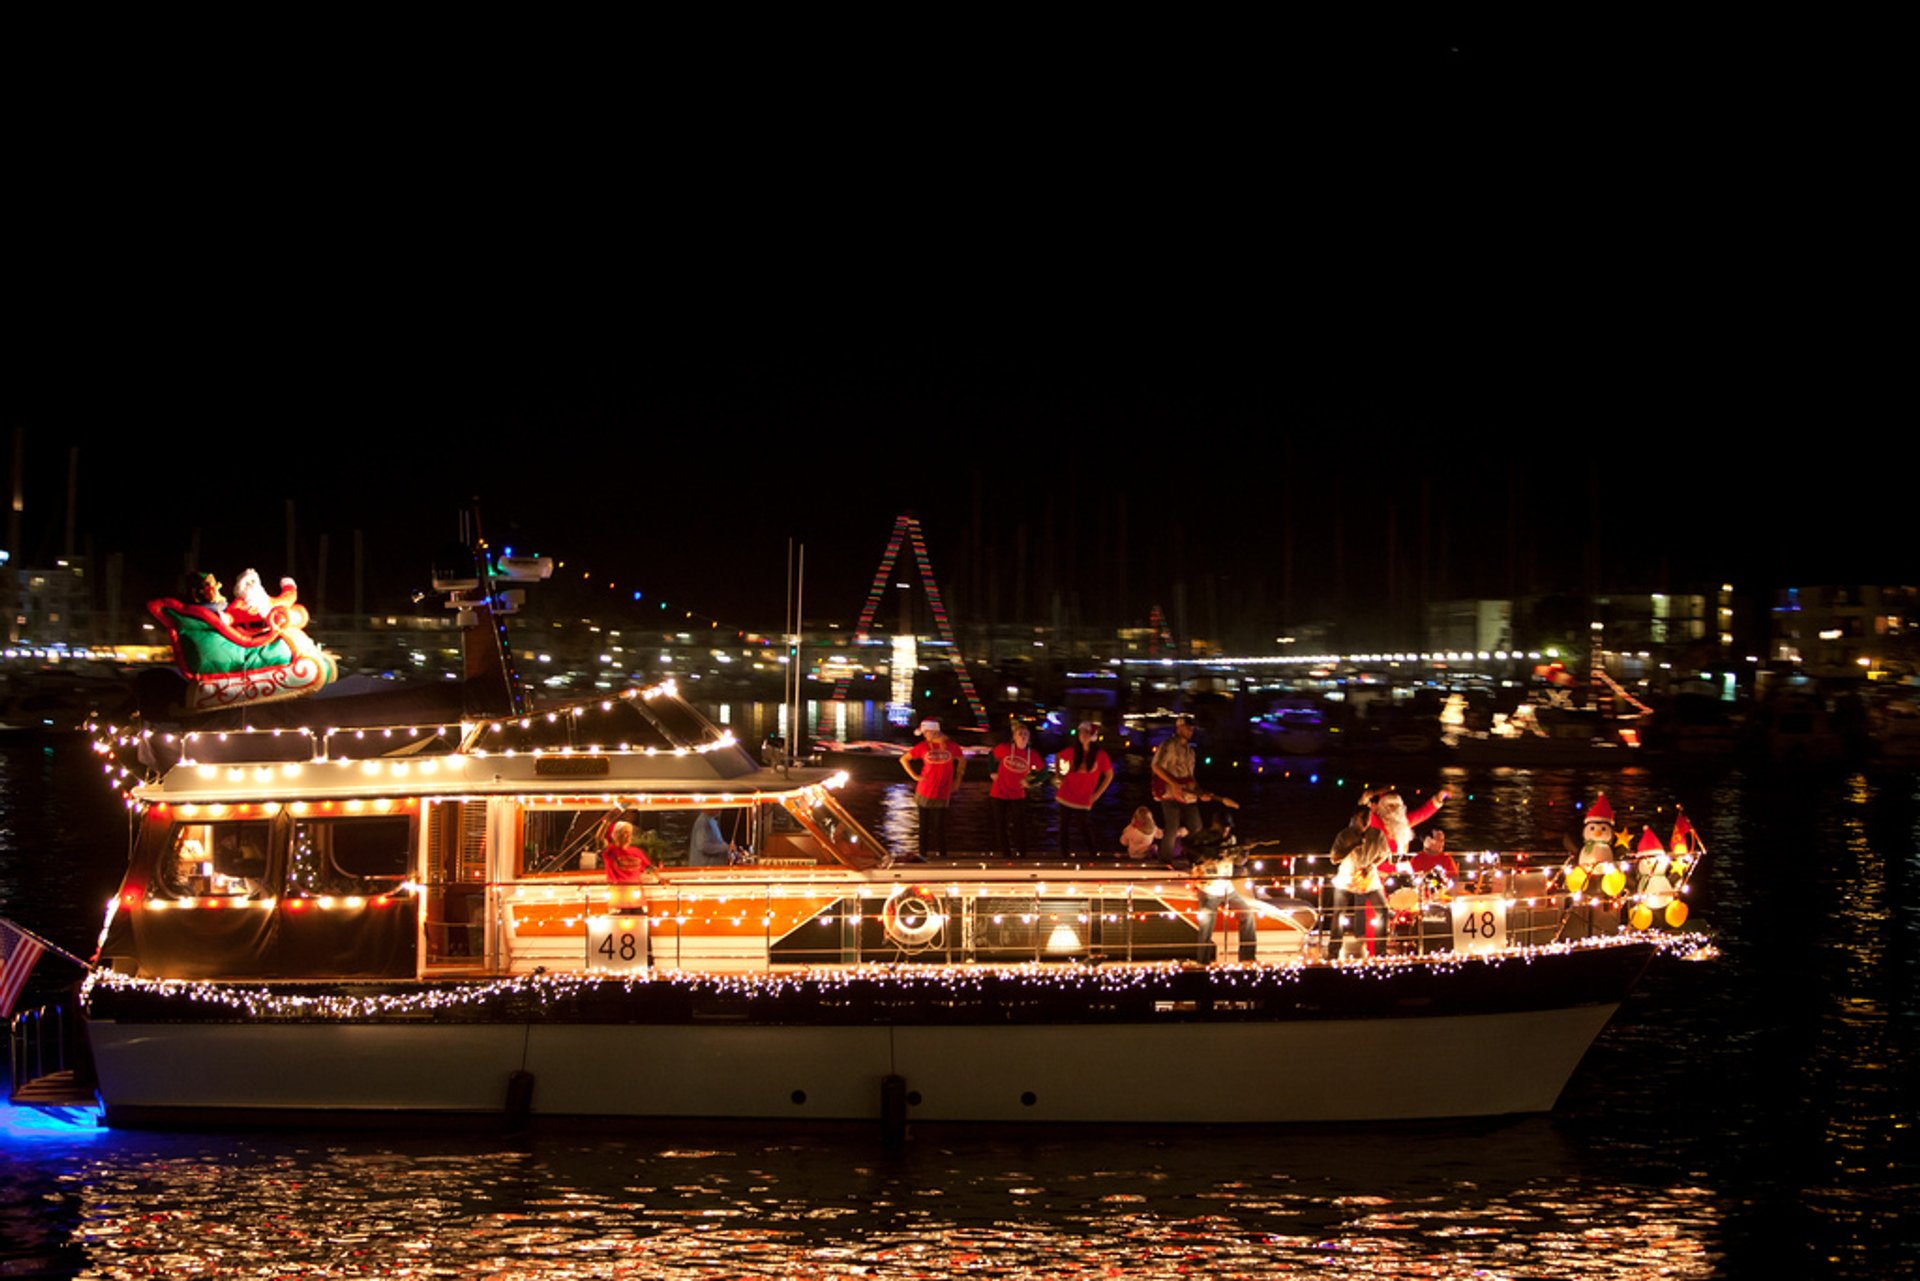 Best time to see Marina del Rey Holiday Boat Parade 2020